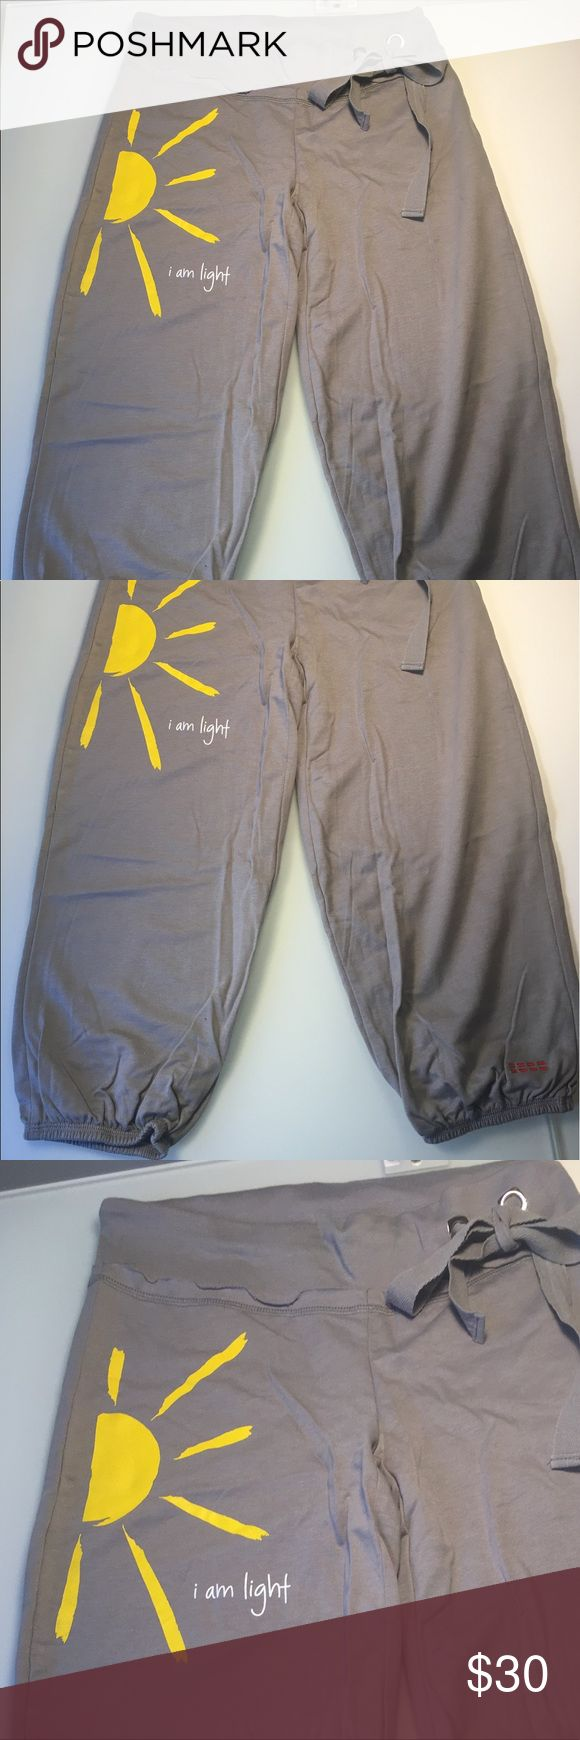 """Peace Love World  I am light sweatpants Peace Love World drawstring grey sweatpants, very cute and fun! On the right leg it has an sun and the words """" I am light"""".  On the back says: Love is not something you look for ... Love is something you become.  NWOT. Size Small Peace Love World Pants Track Pants & Joggers"""